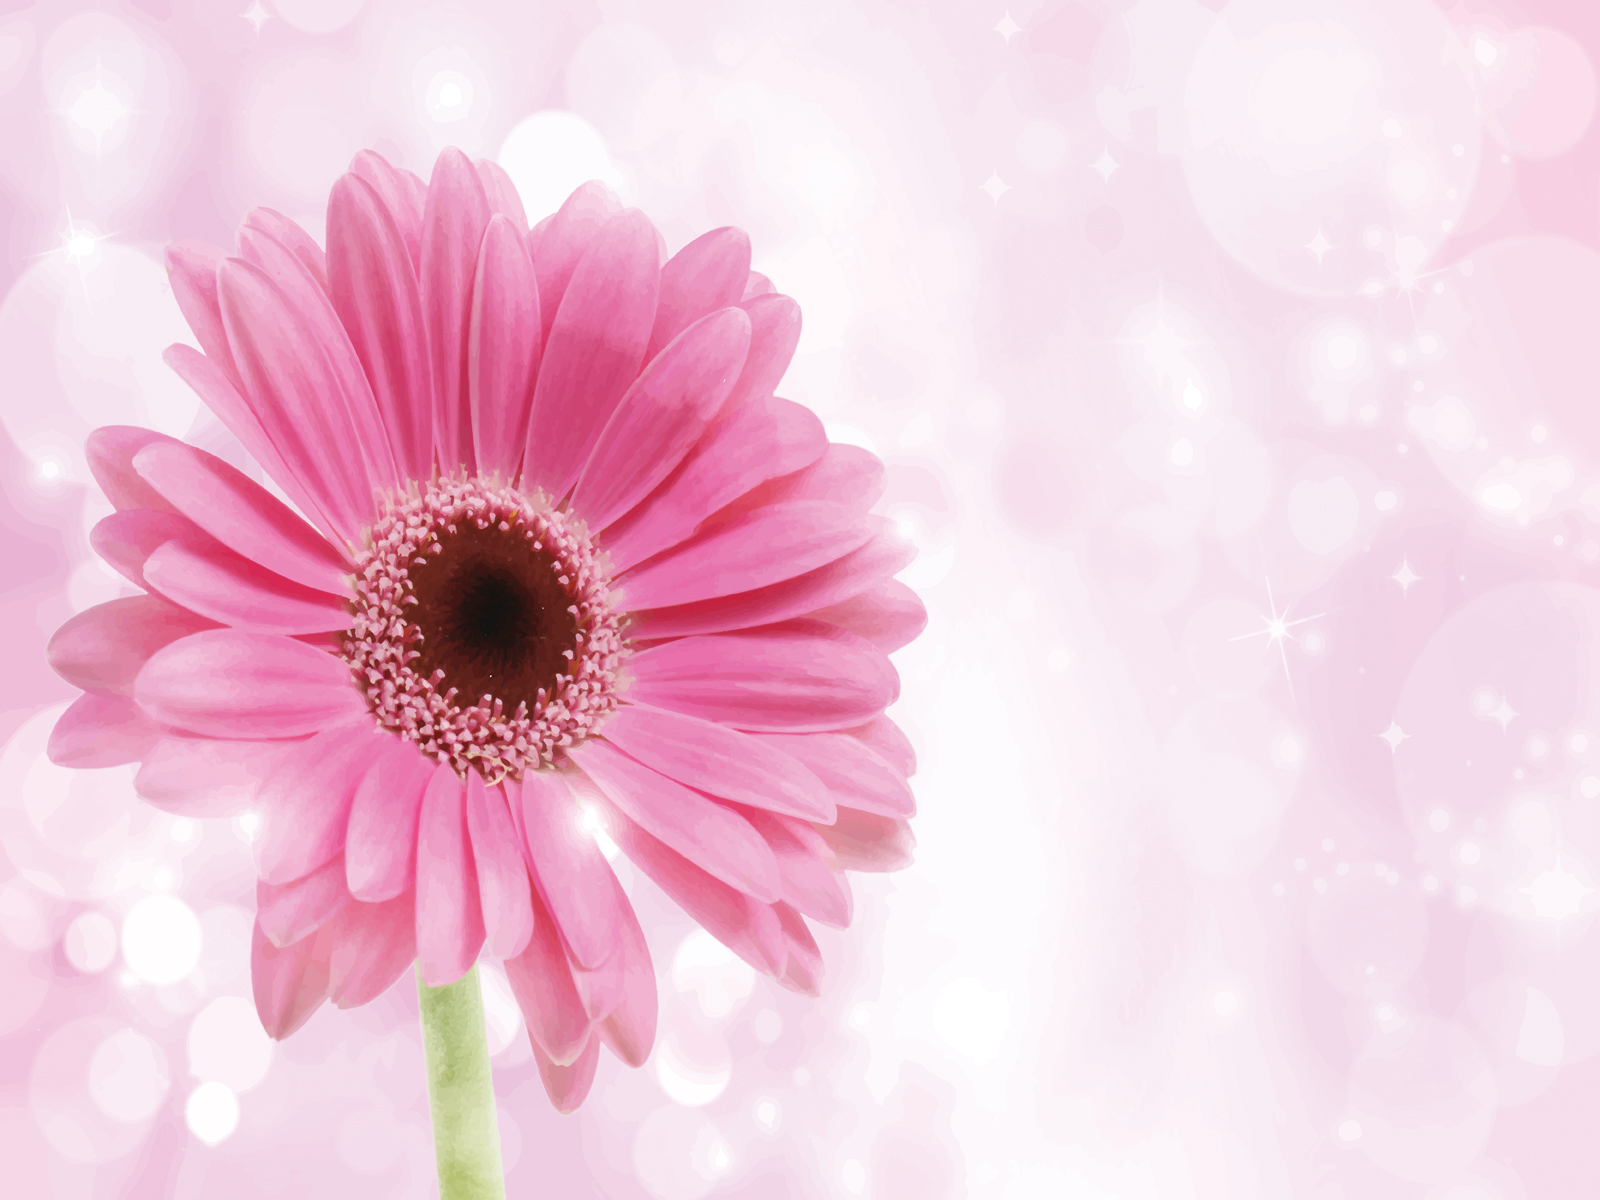 Coral Pattern Pink Chrysanthemum Backgrounds Flowers Nature Pink